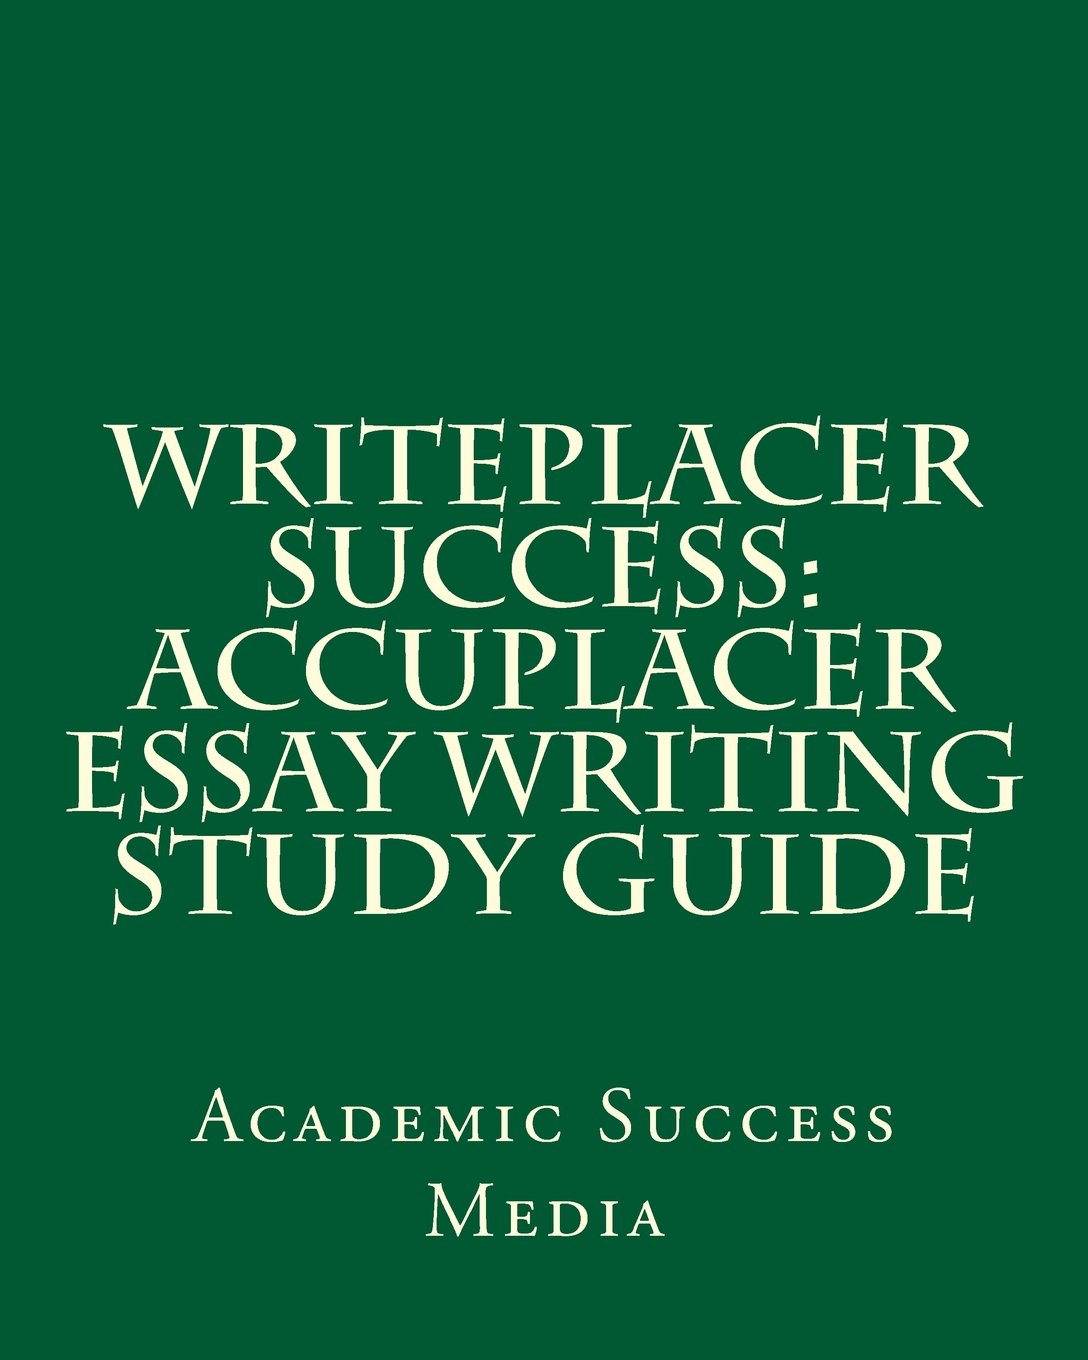 006 Essay Example Accuplacer 612bjro Outstanding Score 7 Study Guide Writeplacer Success Writing Full